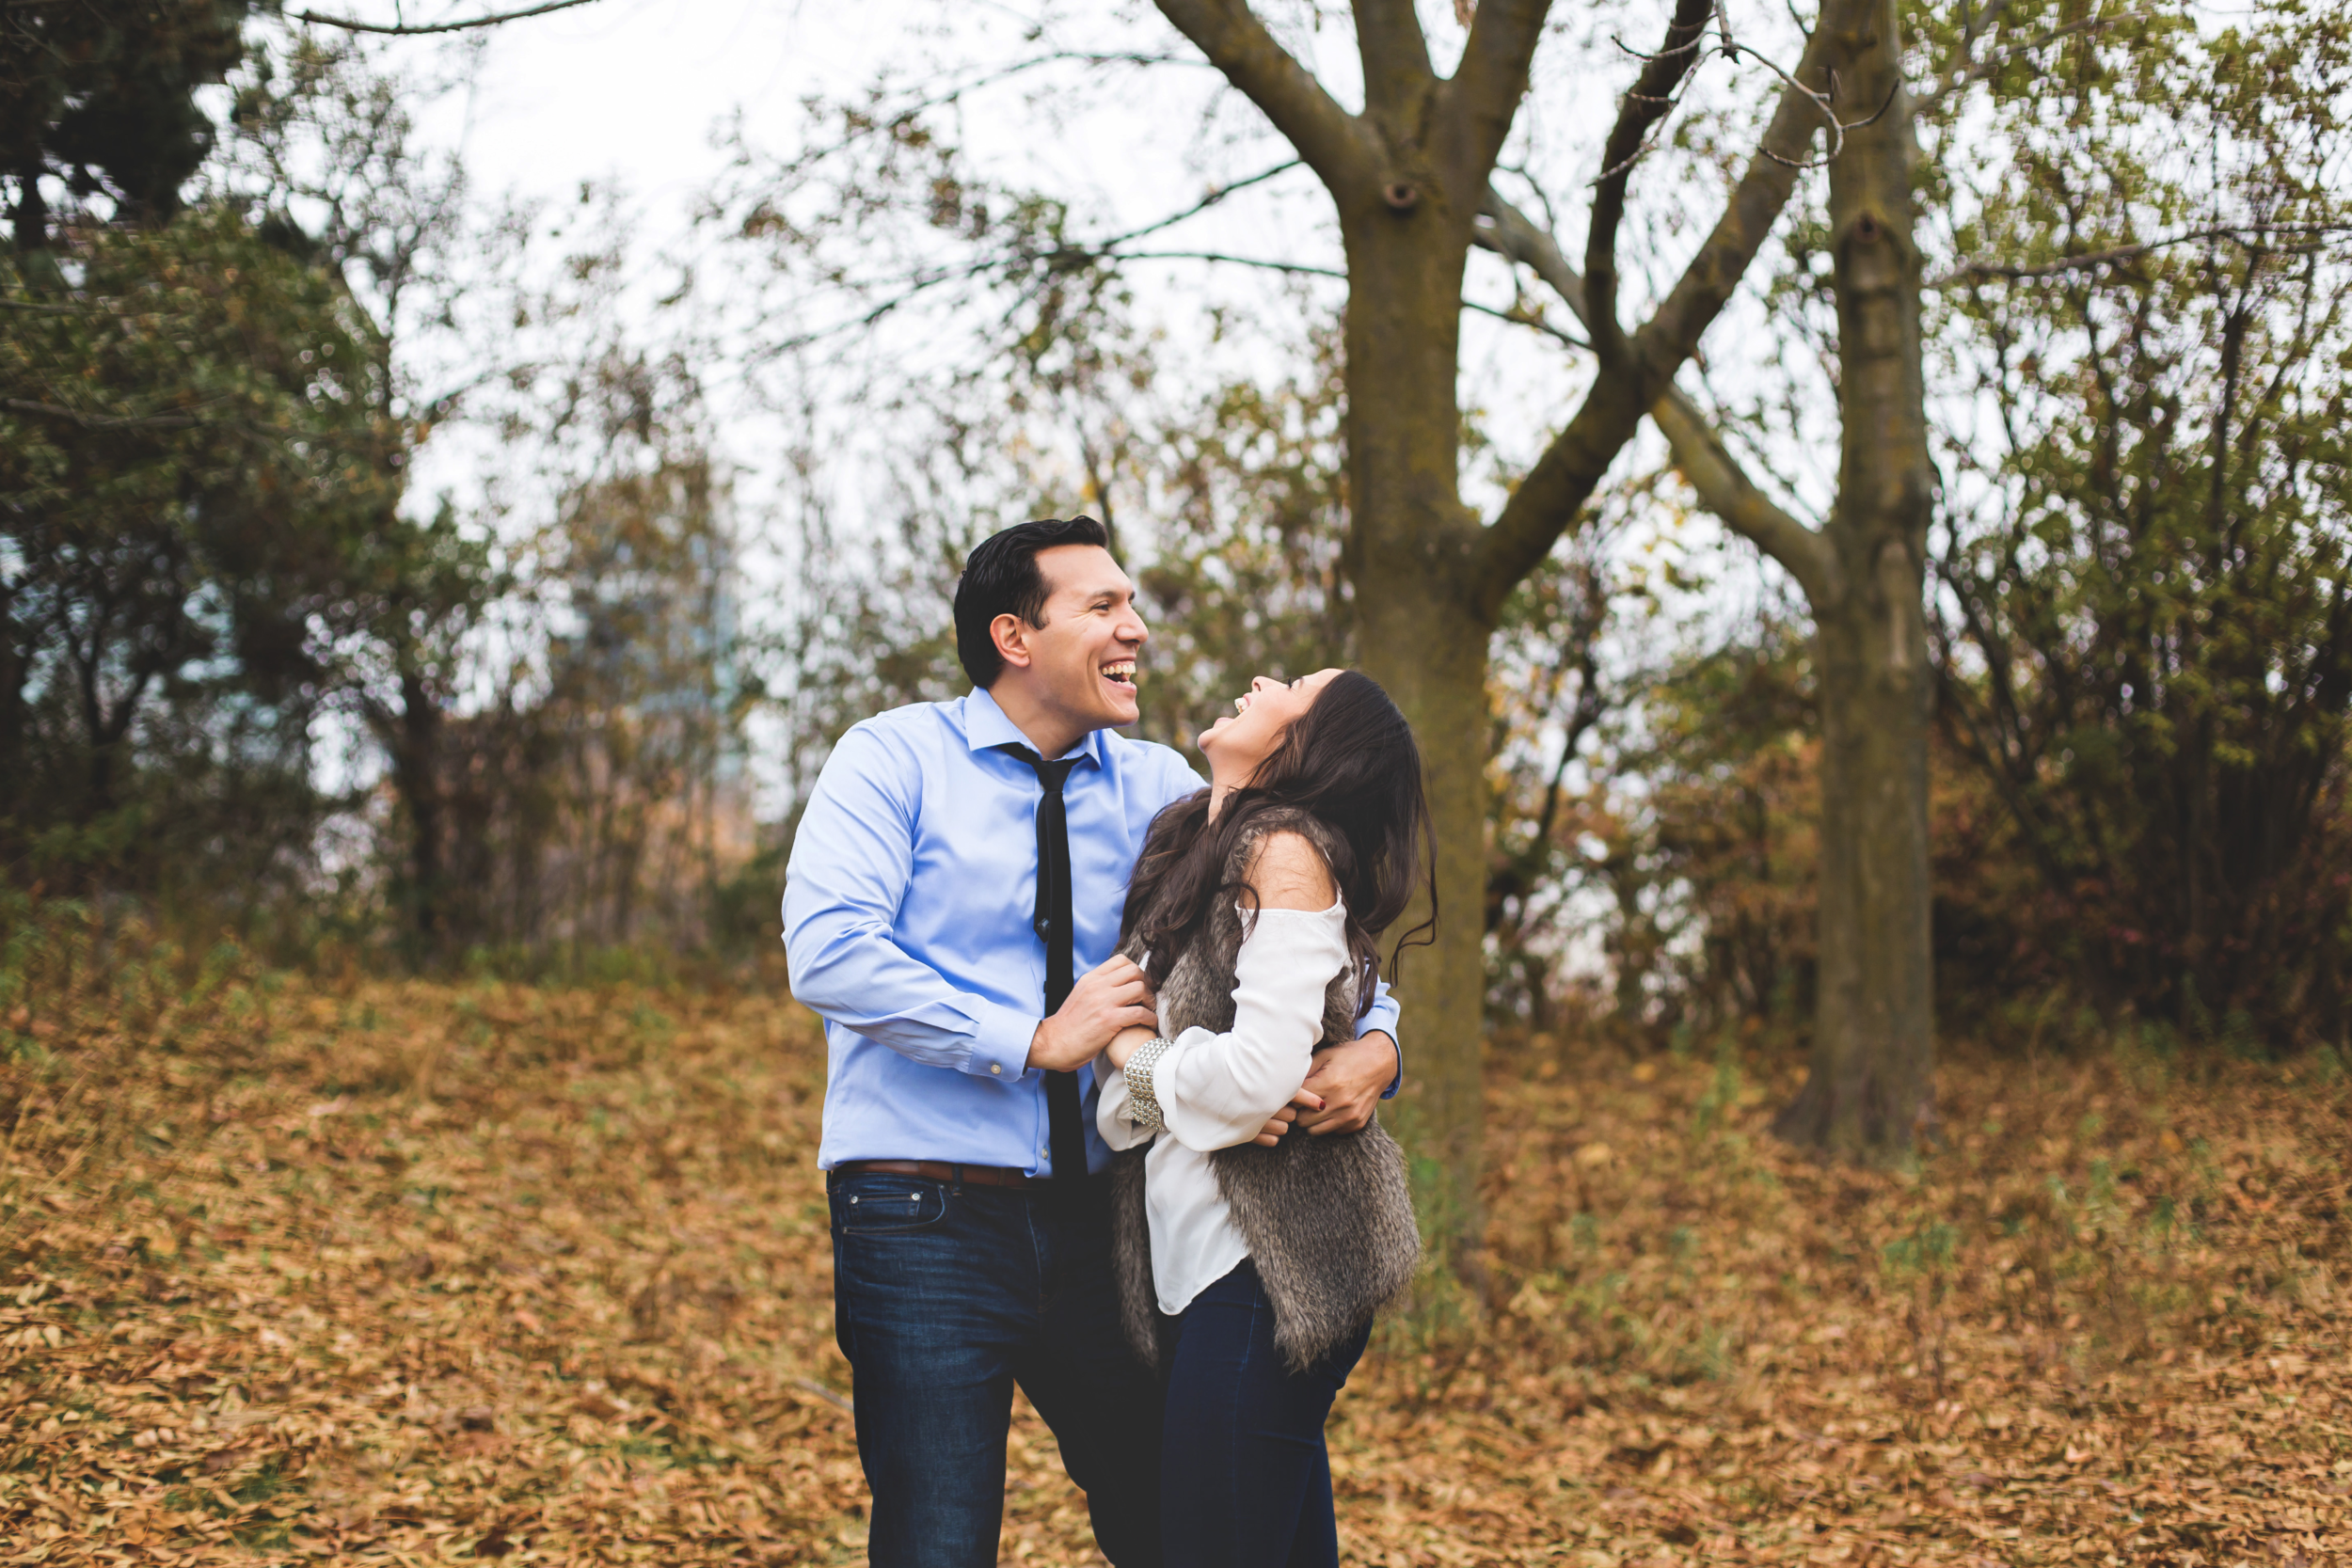 Engagement-Photography-Toronto-Skyline-City-Waterfront-HumberBay-Hamilton-Burlington-Oakville-Niagara-Toronto-Wedding-Photographer-Photo-Image-15.png